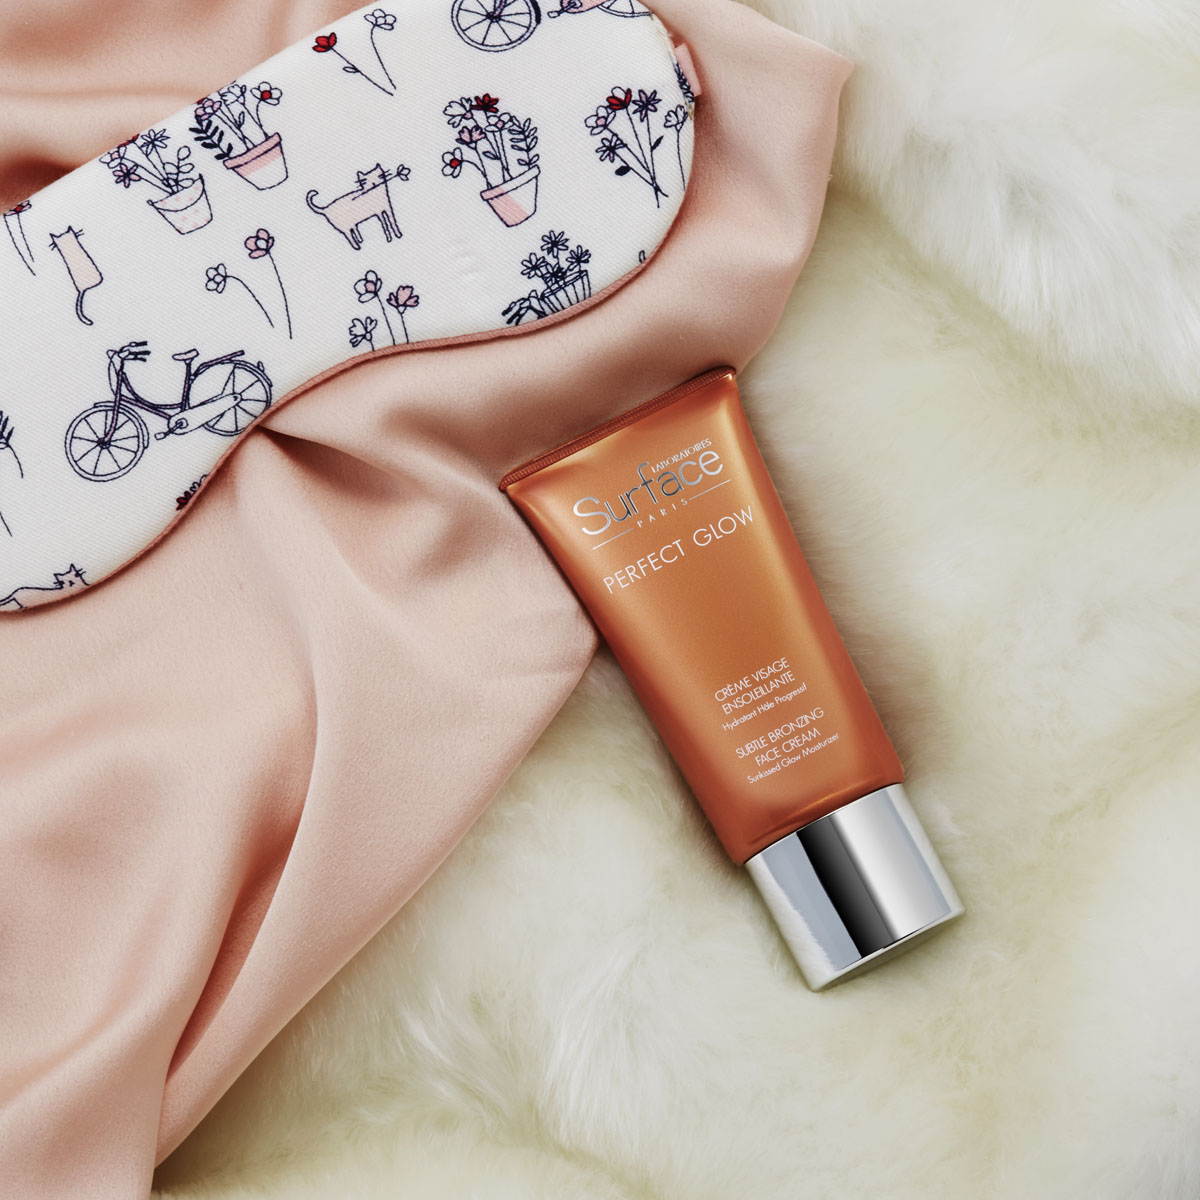 Surface Paris Boost your Glow while You Sleep